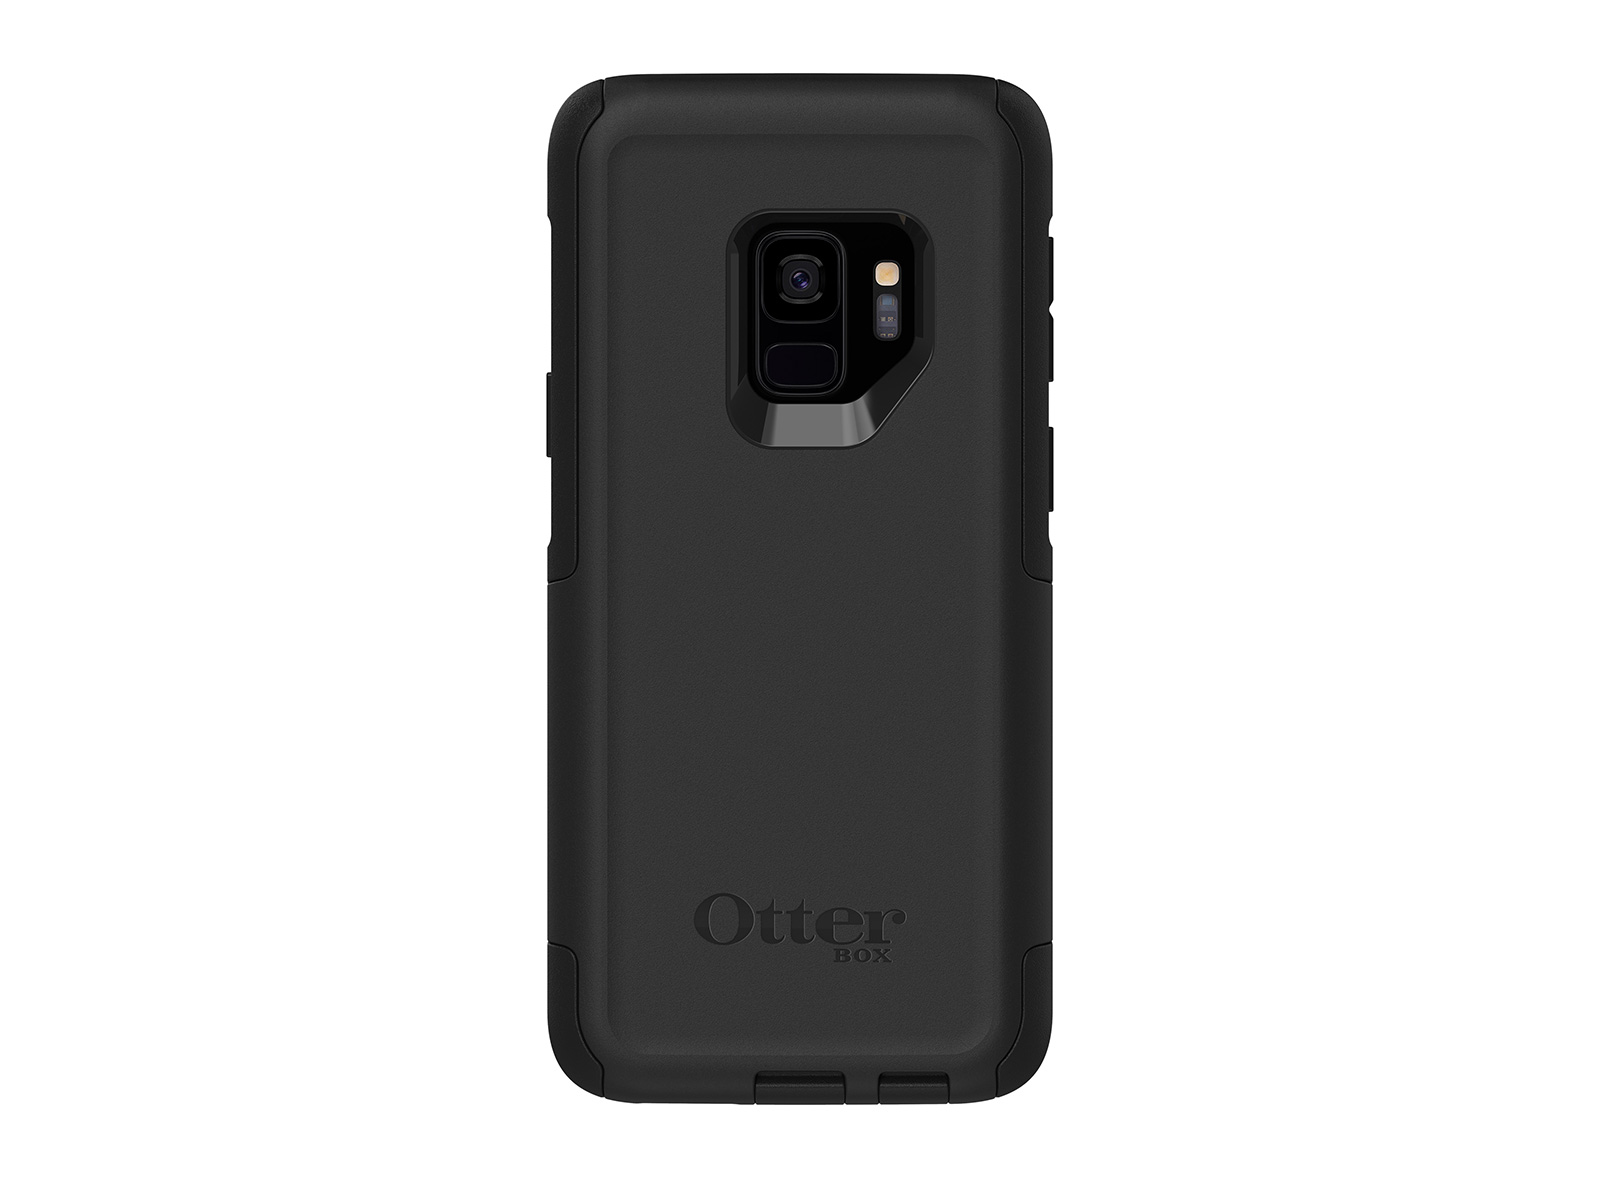 huge selection of b2b67 98a8e OtterBox Commuter for Galaxy S9, Black Mobile Accessories - 77-57851 |  Samsung US